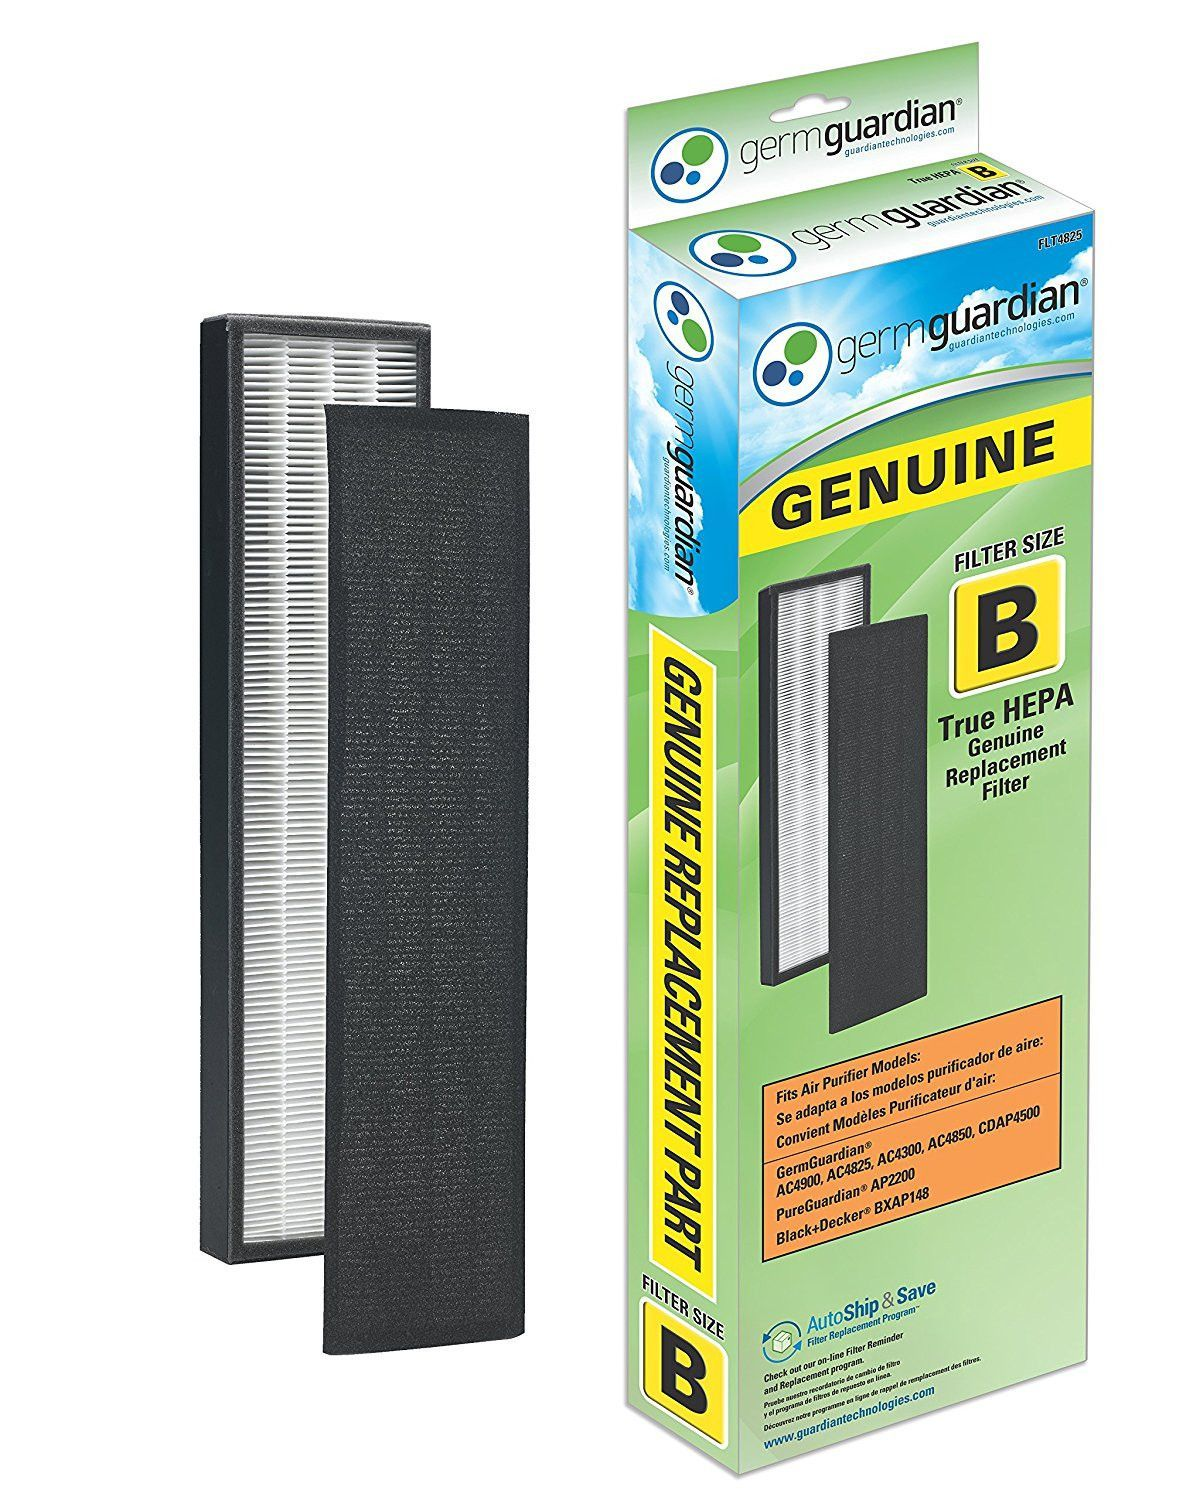 GermGuardian FLT4825 GENUINE True HEPA Replacement Filter